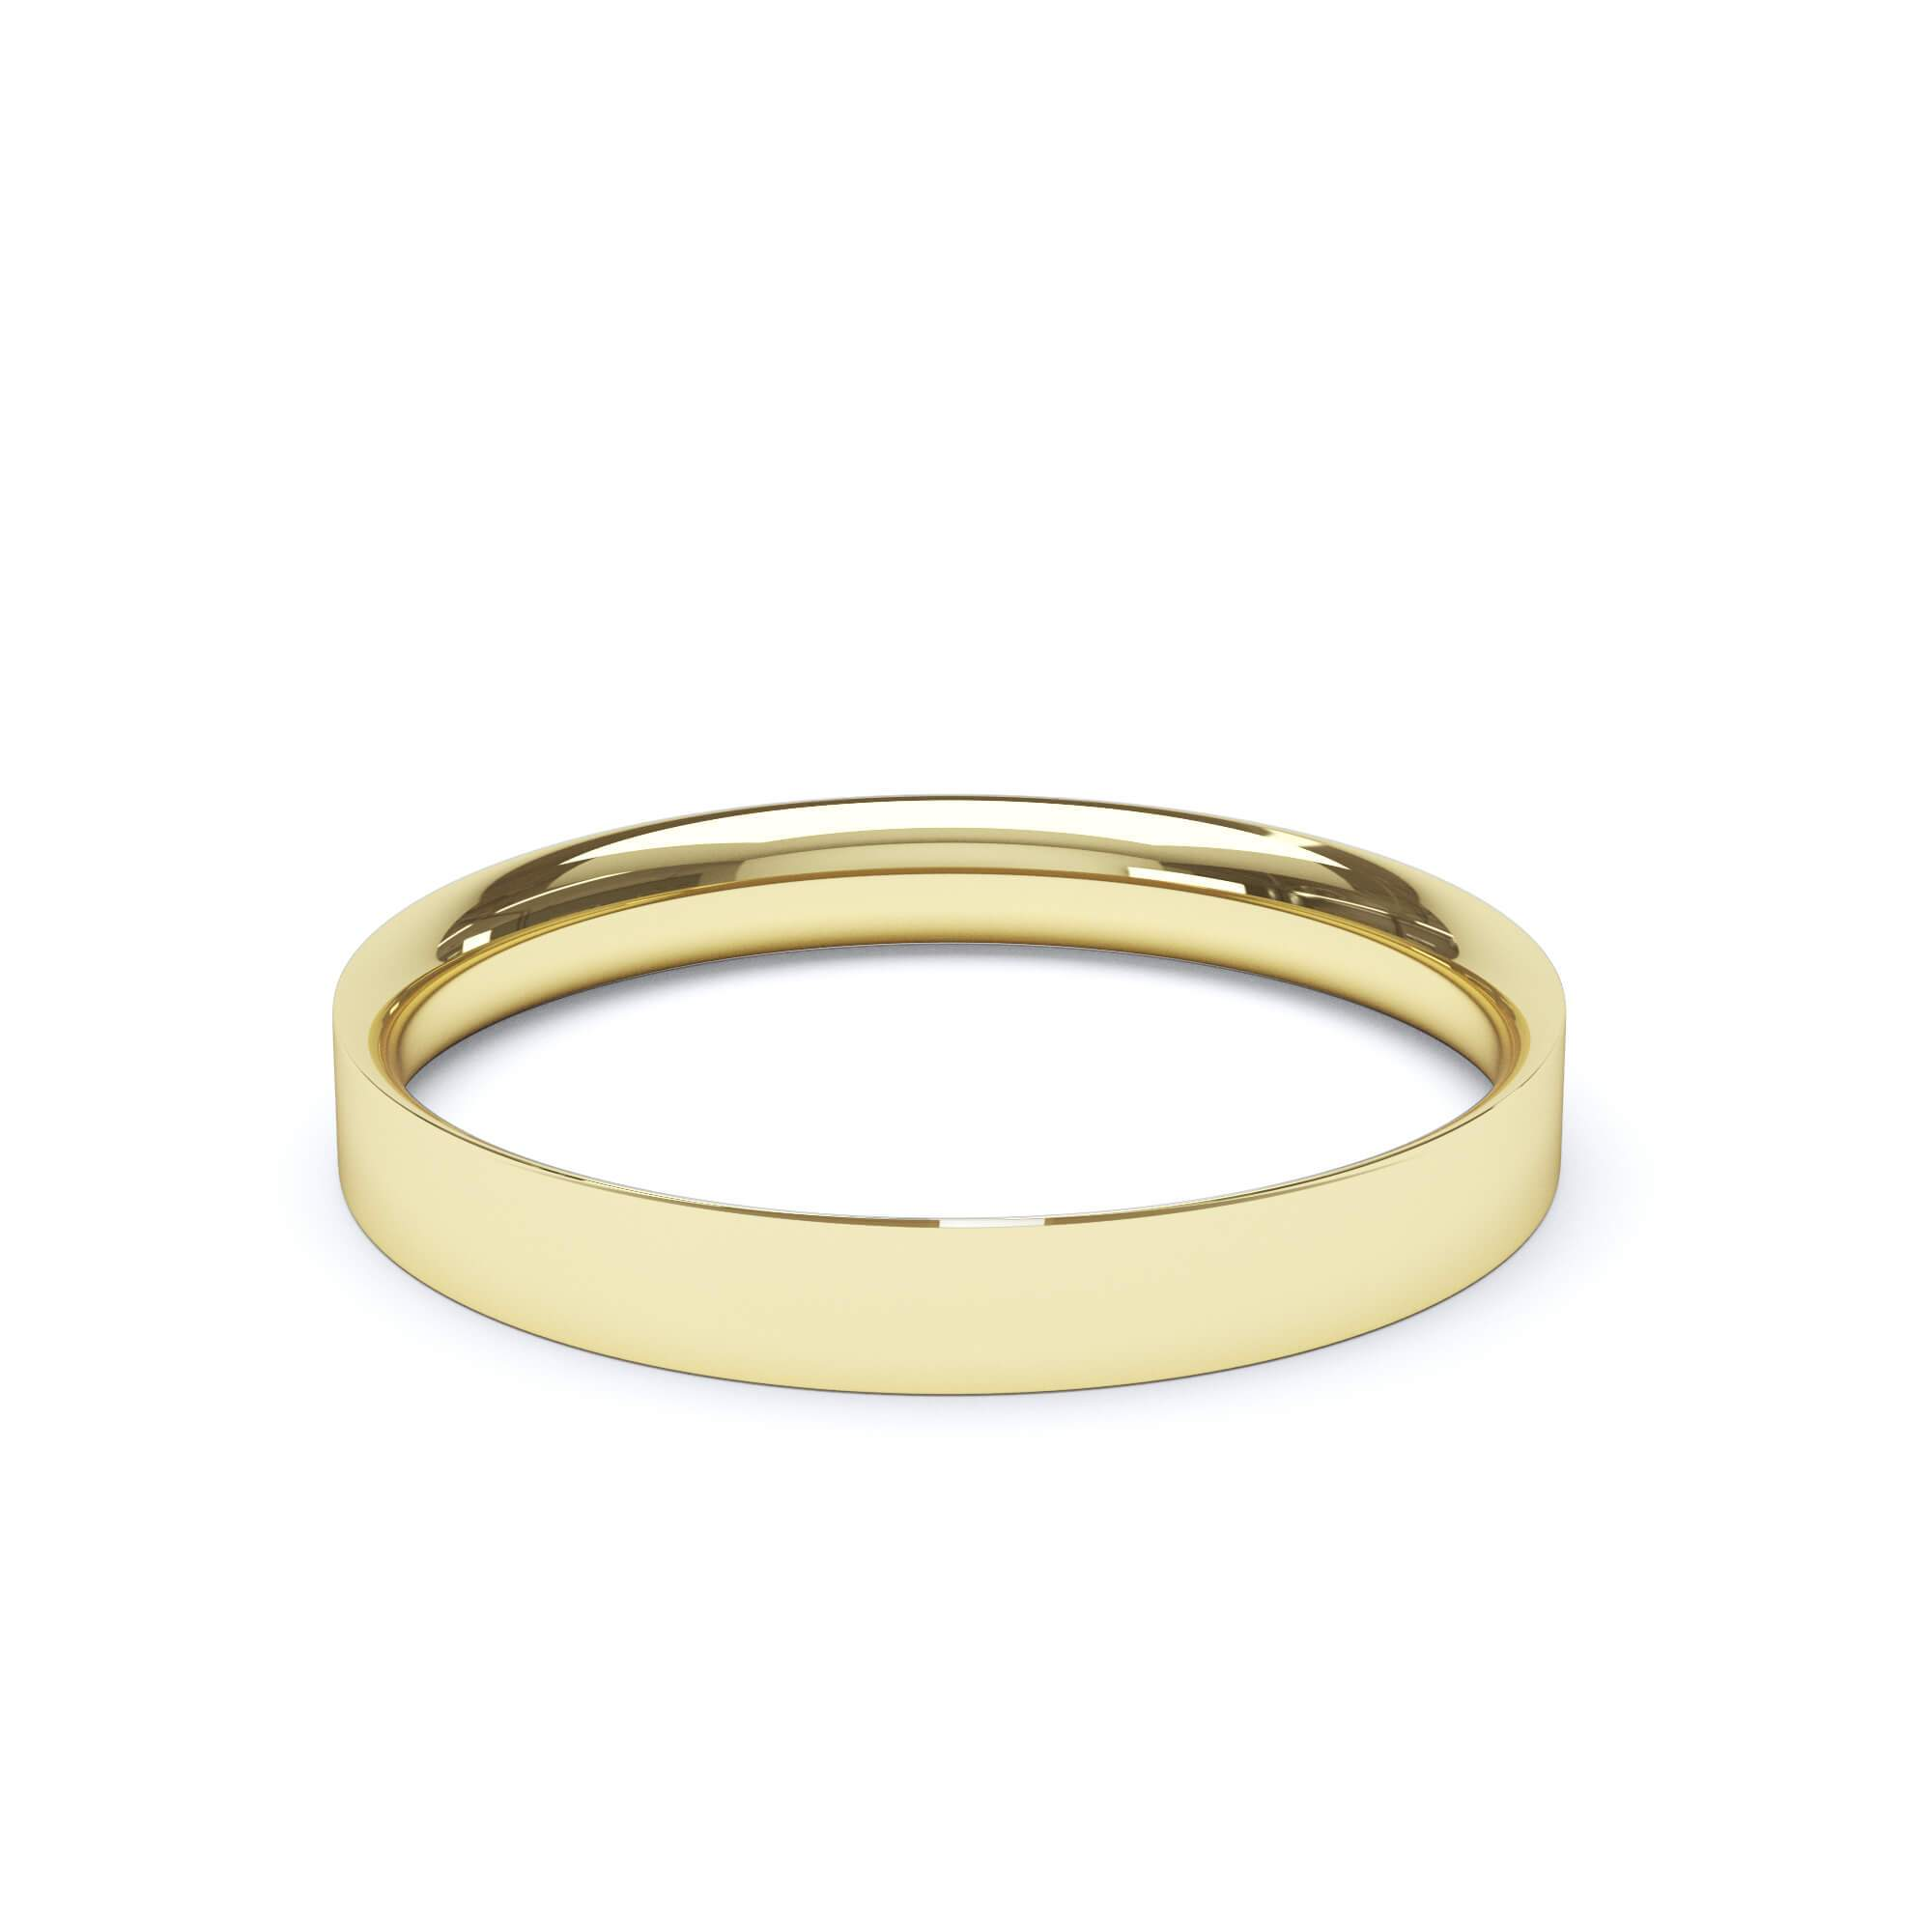 Lily Arkwright Wedding Bands 3.0mm / 18K Yellow Gold Women's of Plain Wedding Band Flat Court Profile 18k Yellow Gold